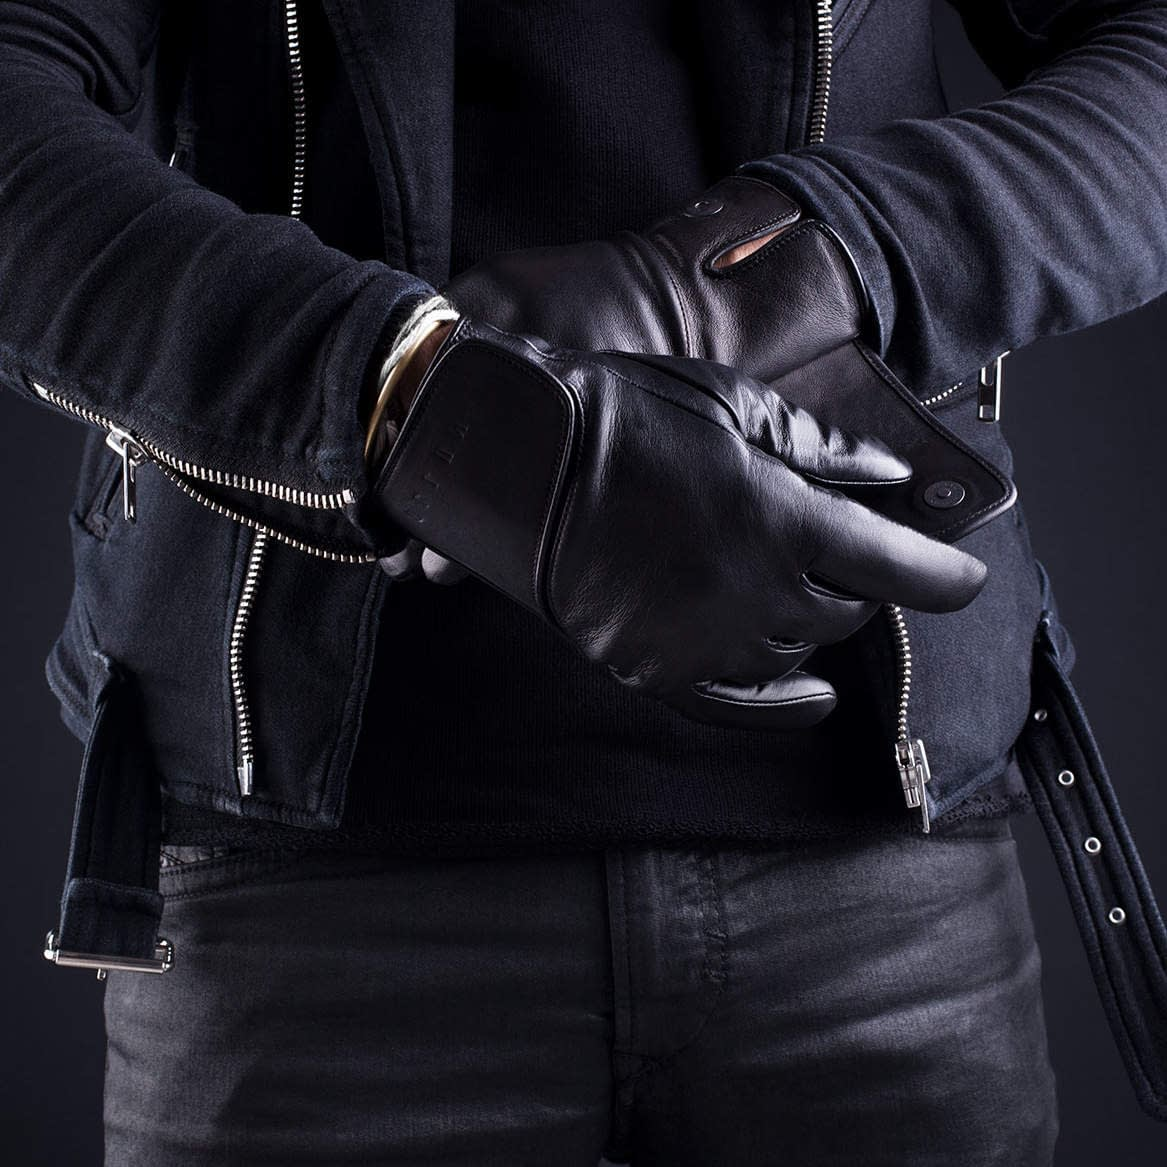 Leather Touchscreen Gloves Lifestyle 007